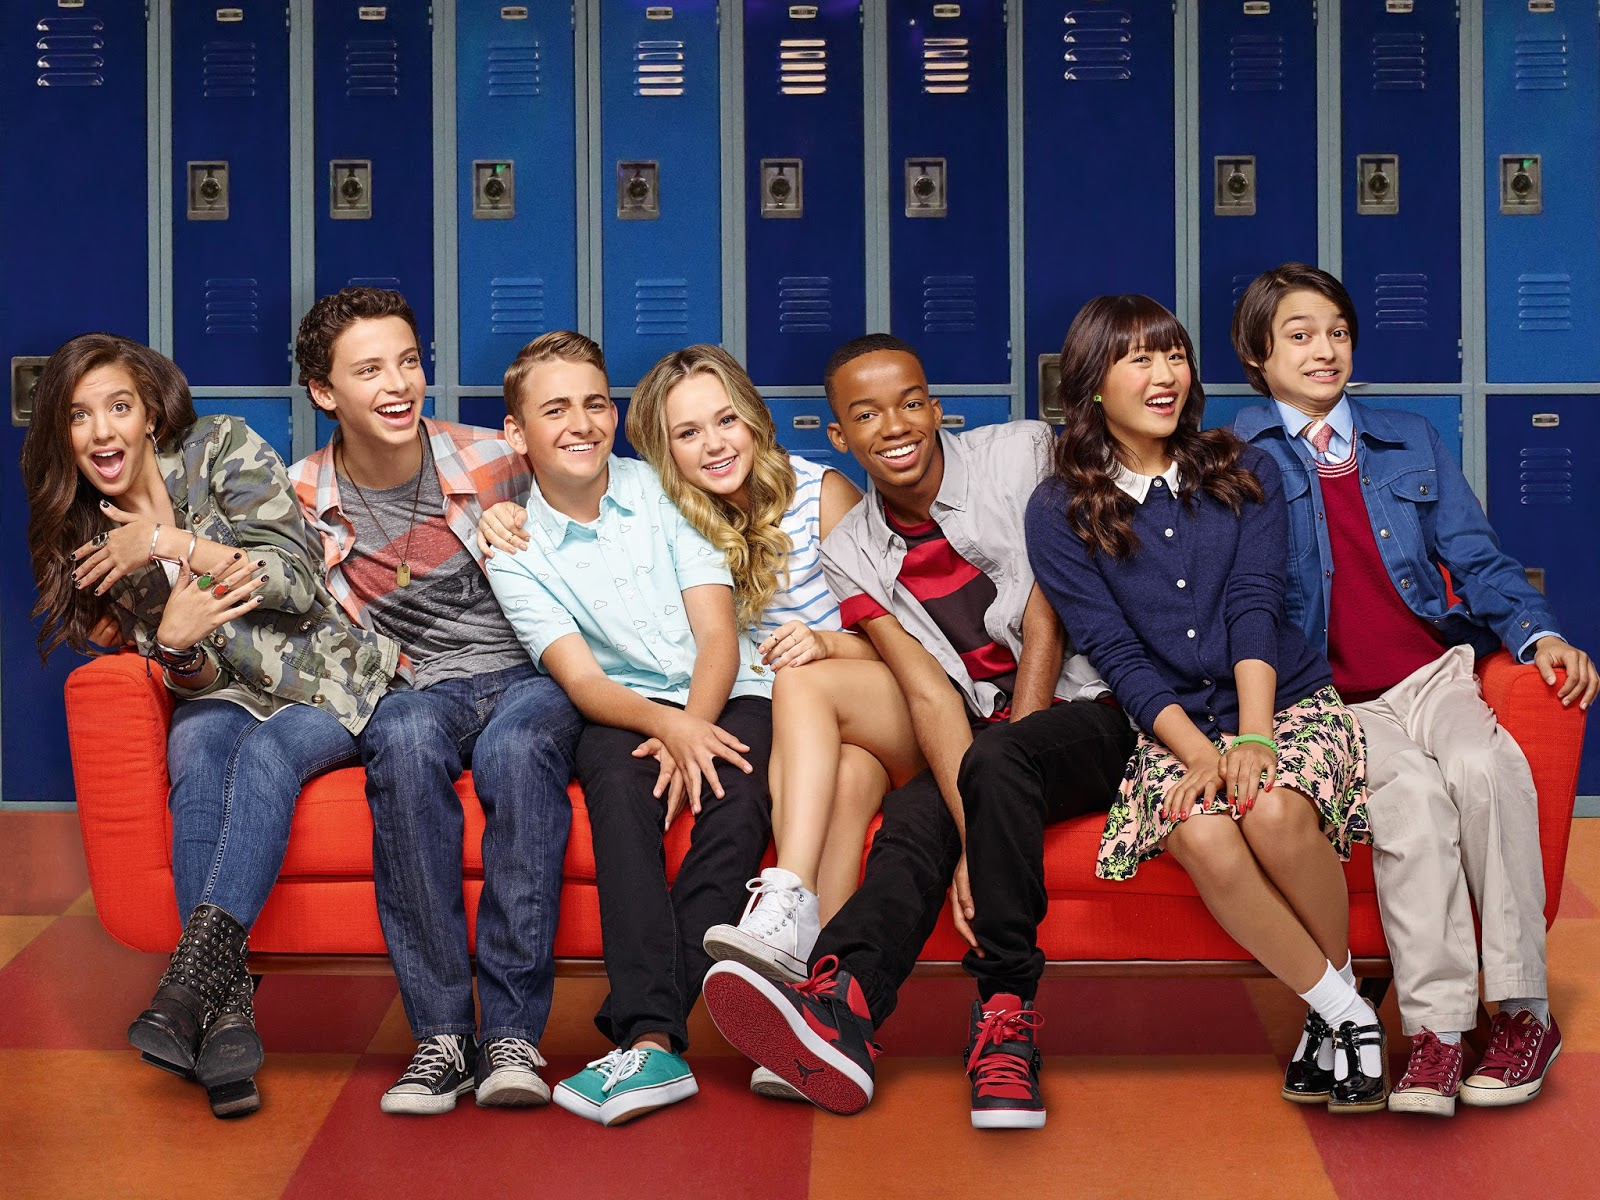 at 9 00pm et pt from 19th march 2016 following all new episodes of nickelodeon s brand new musical comedy series school of rock at 8 30pm et pt